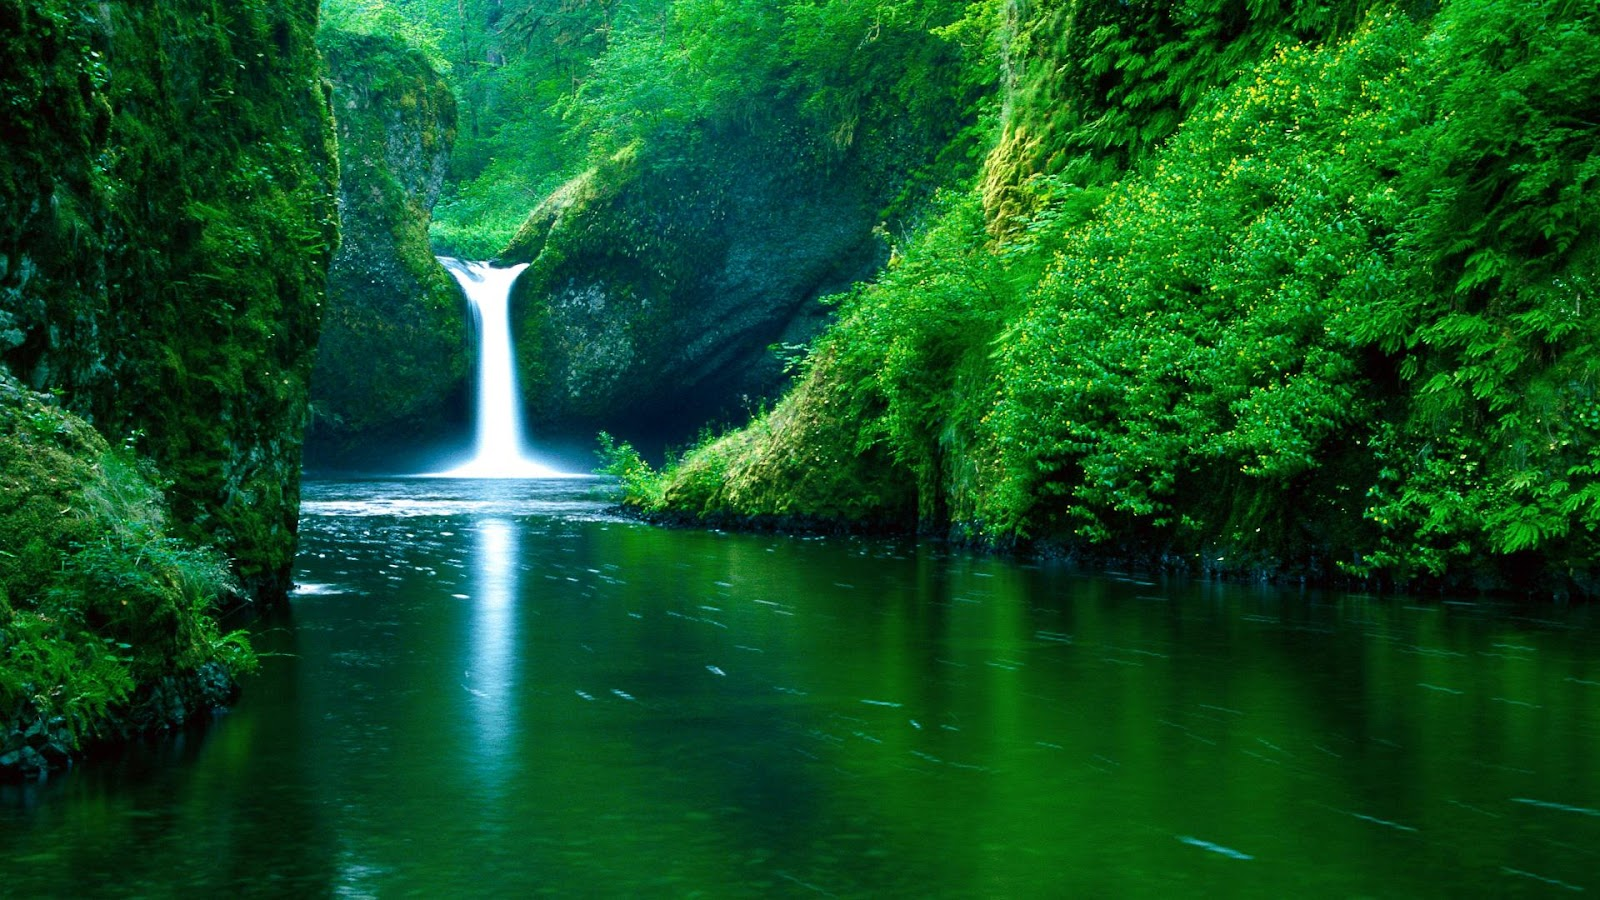 sweetcouple: full hd waterfall nature wallpapers widescreen for